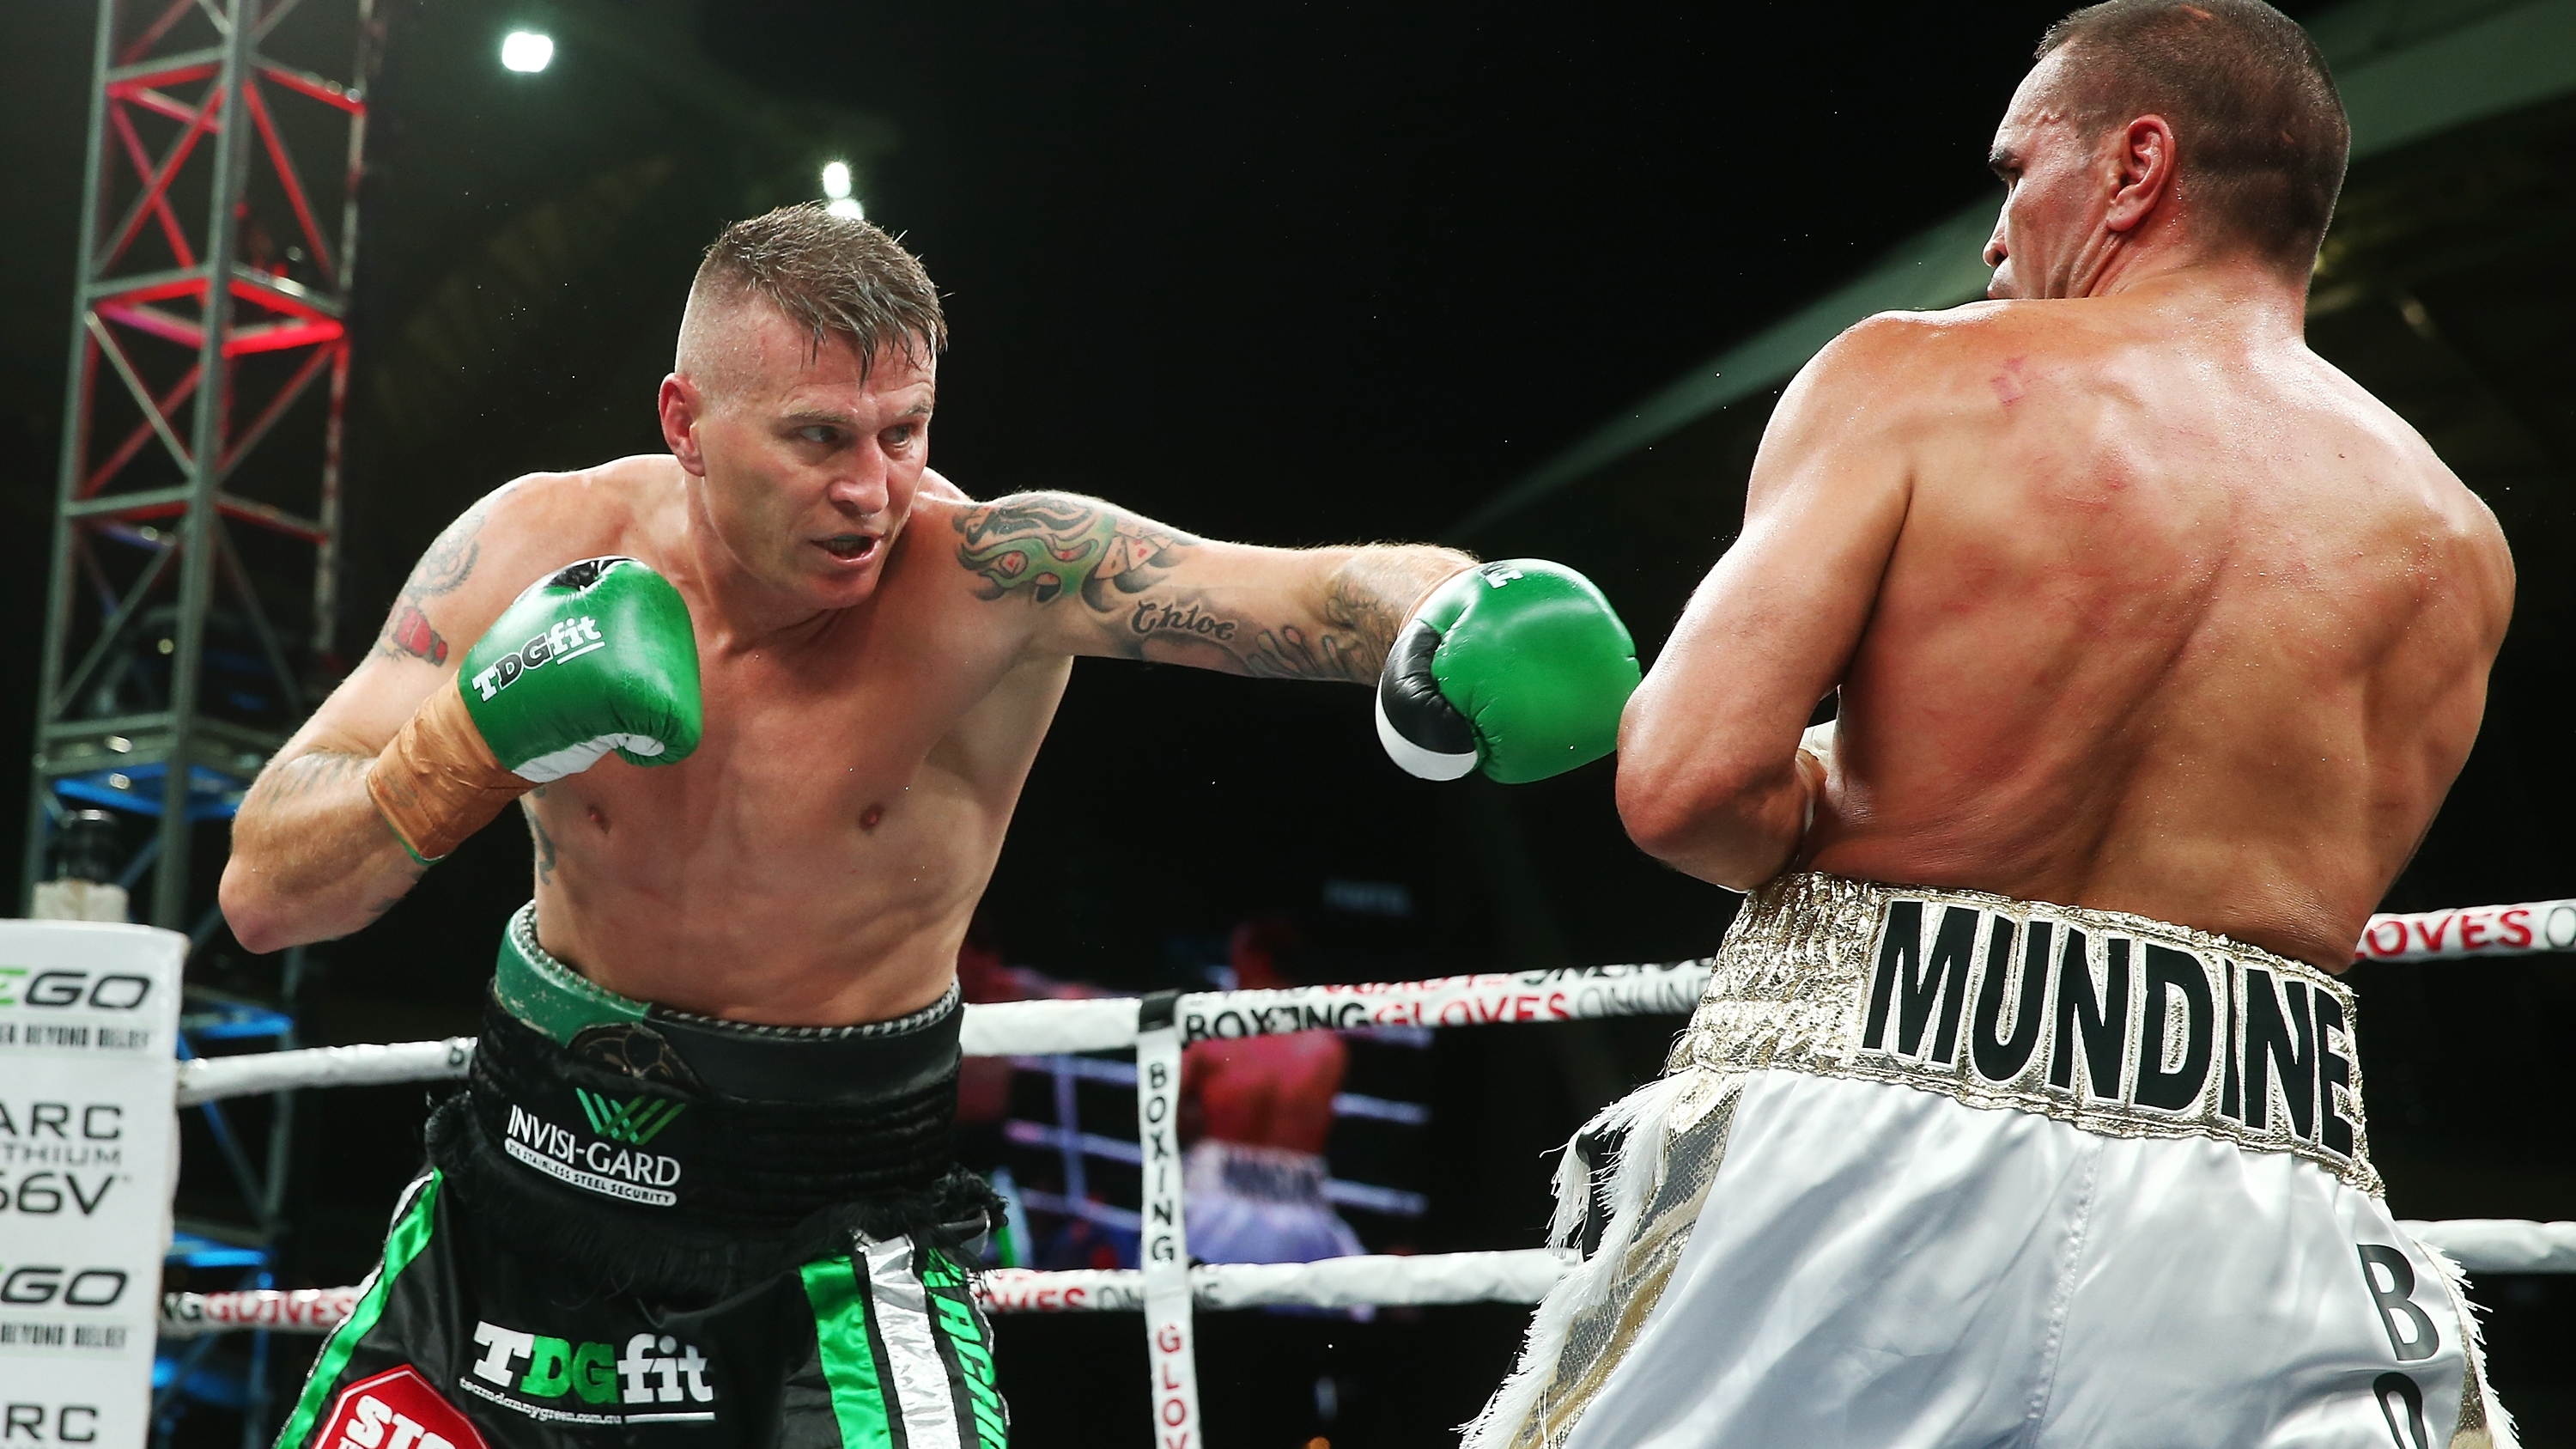 Danny Green defeats Anthony Mundine in 'dirty' rematch ...